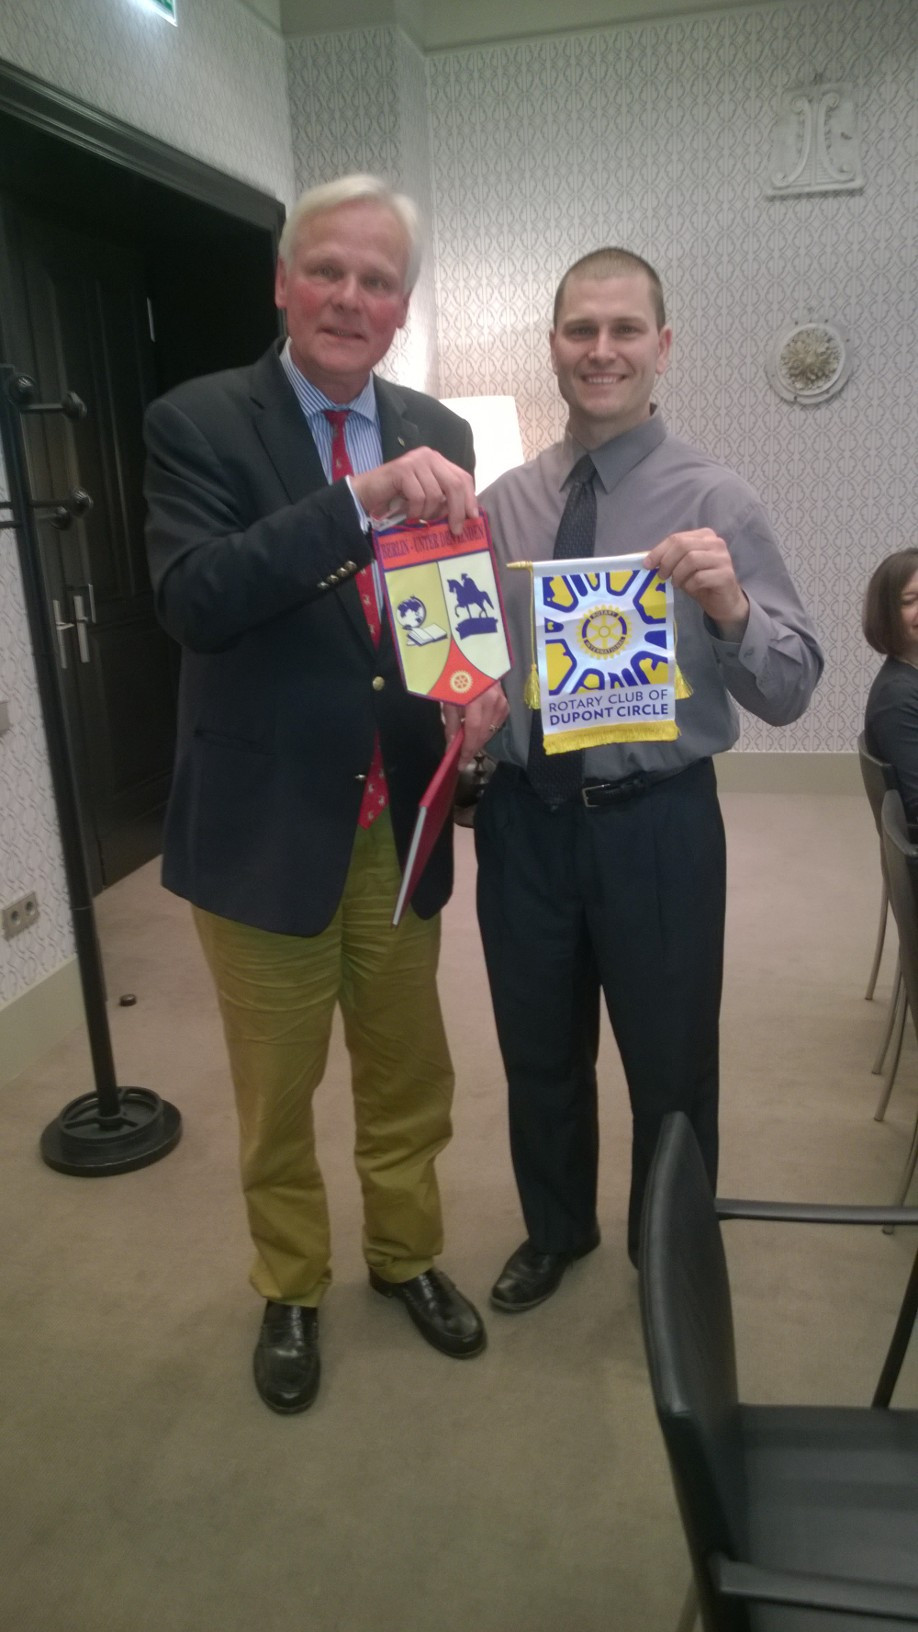 Dupont Rotary President Bryan Schaaf exchanges Rotary banners with a member of the Unter Den Linden Rotary Club in Berlin